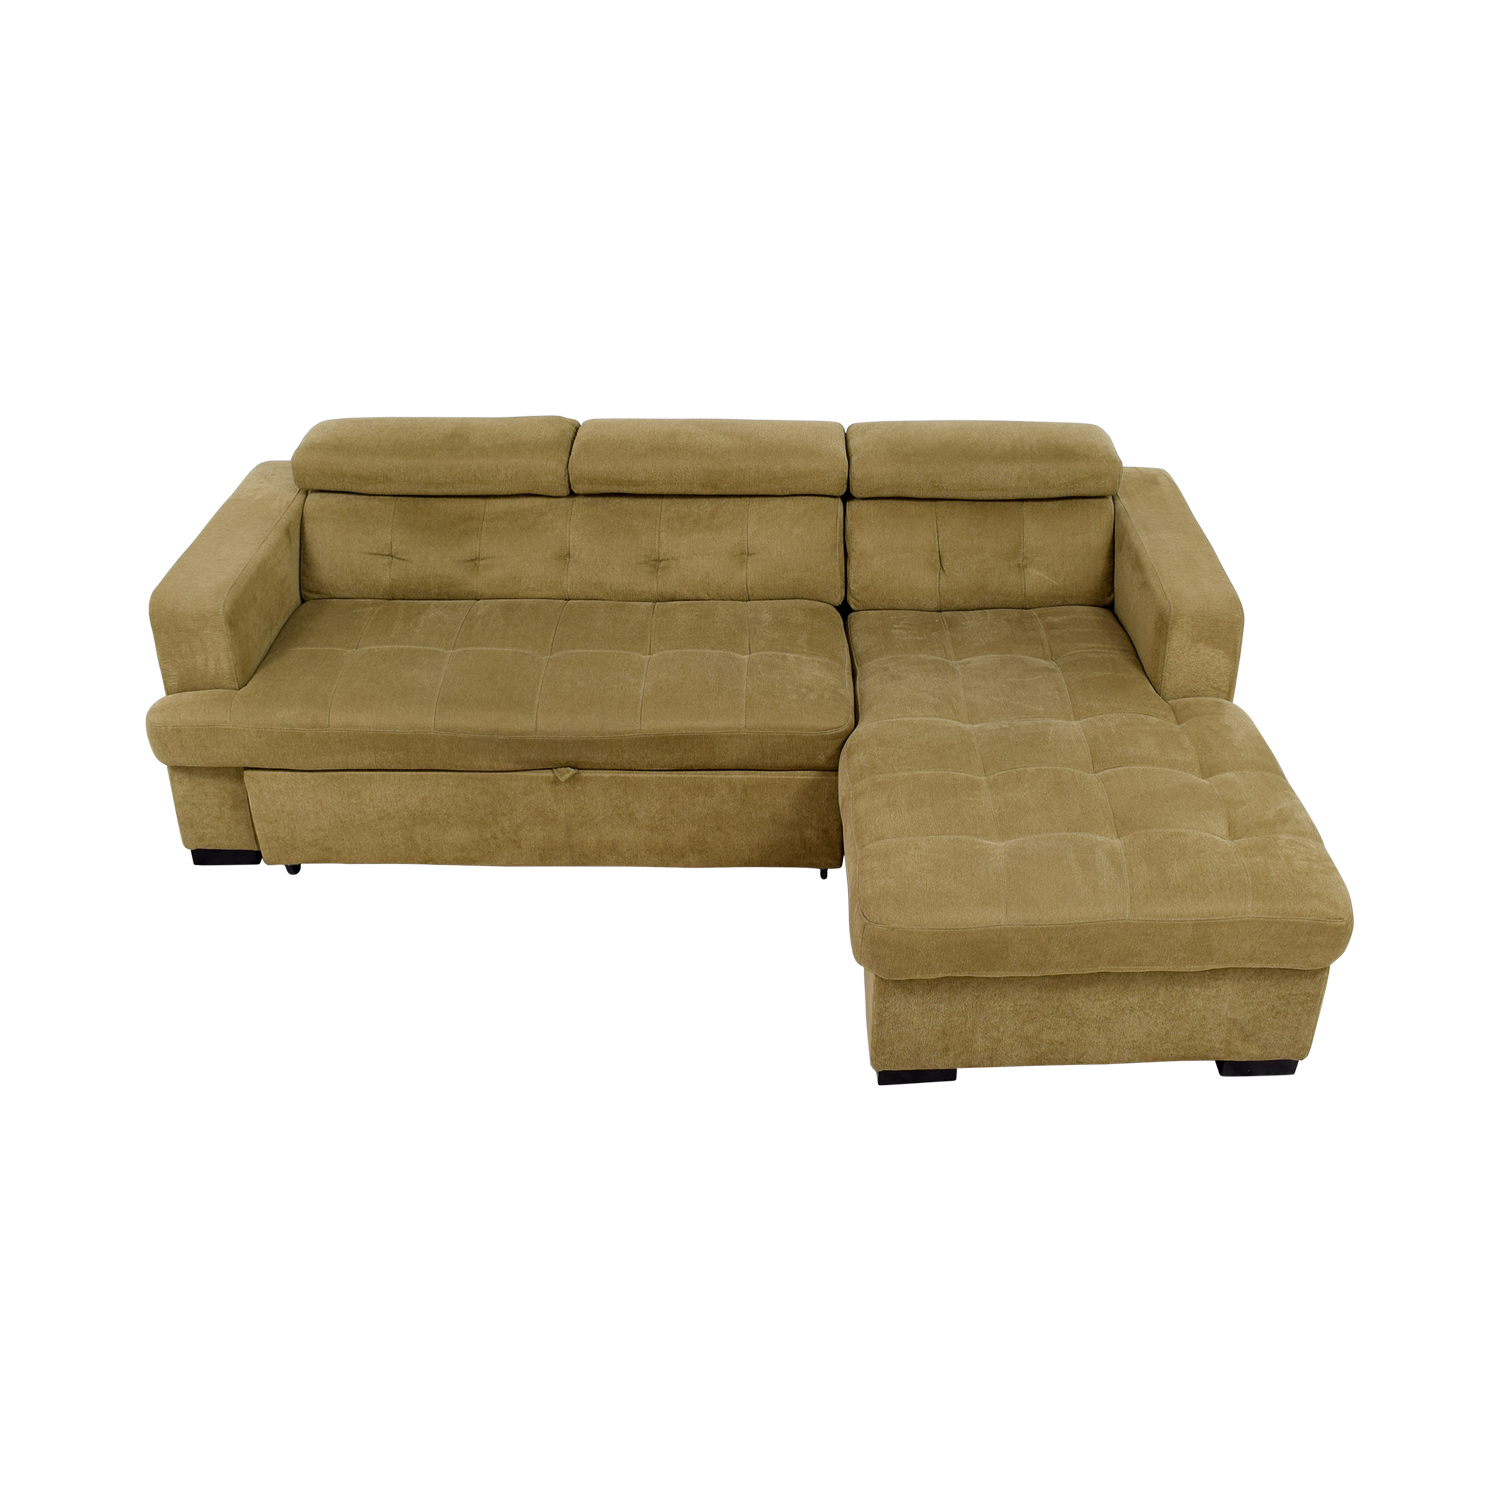 buy Bobs Furniture Gold Chaise Sectional Sleeper Sofa Bobs Furniture Sofas